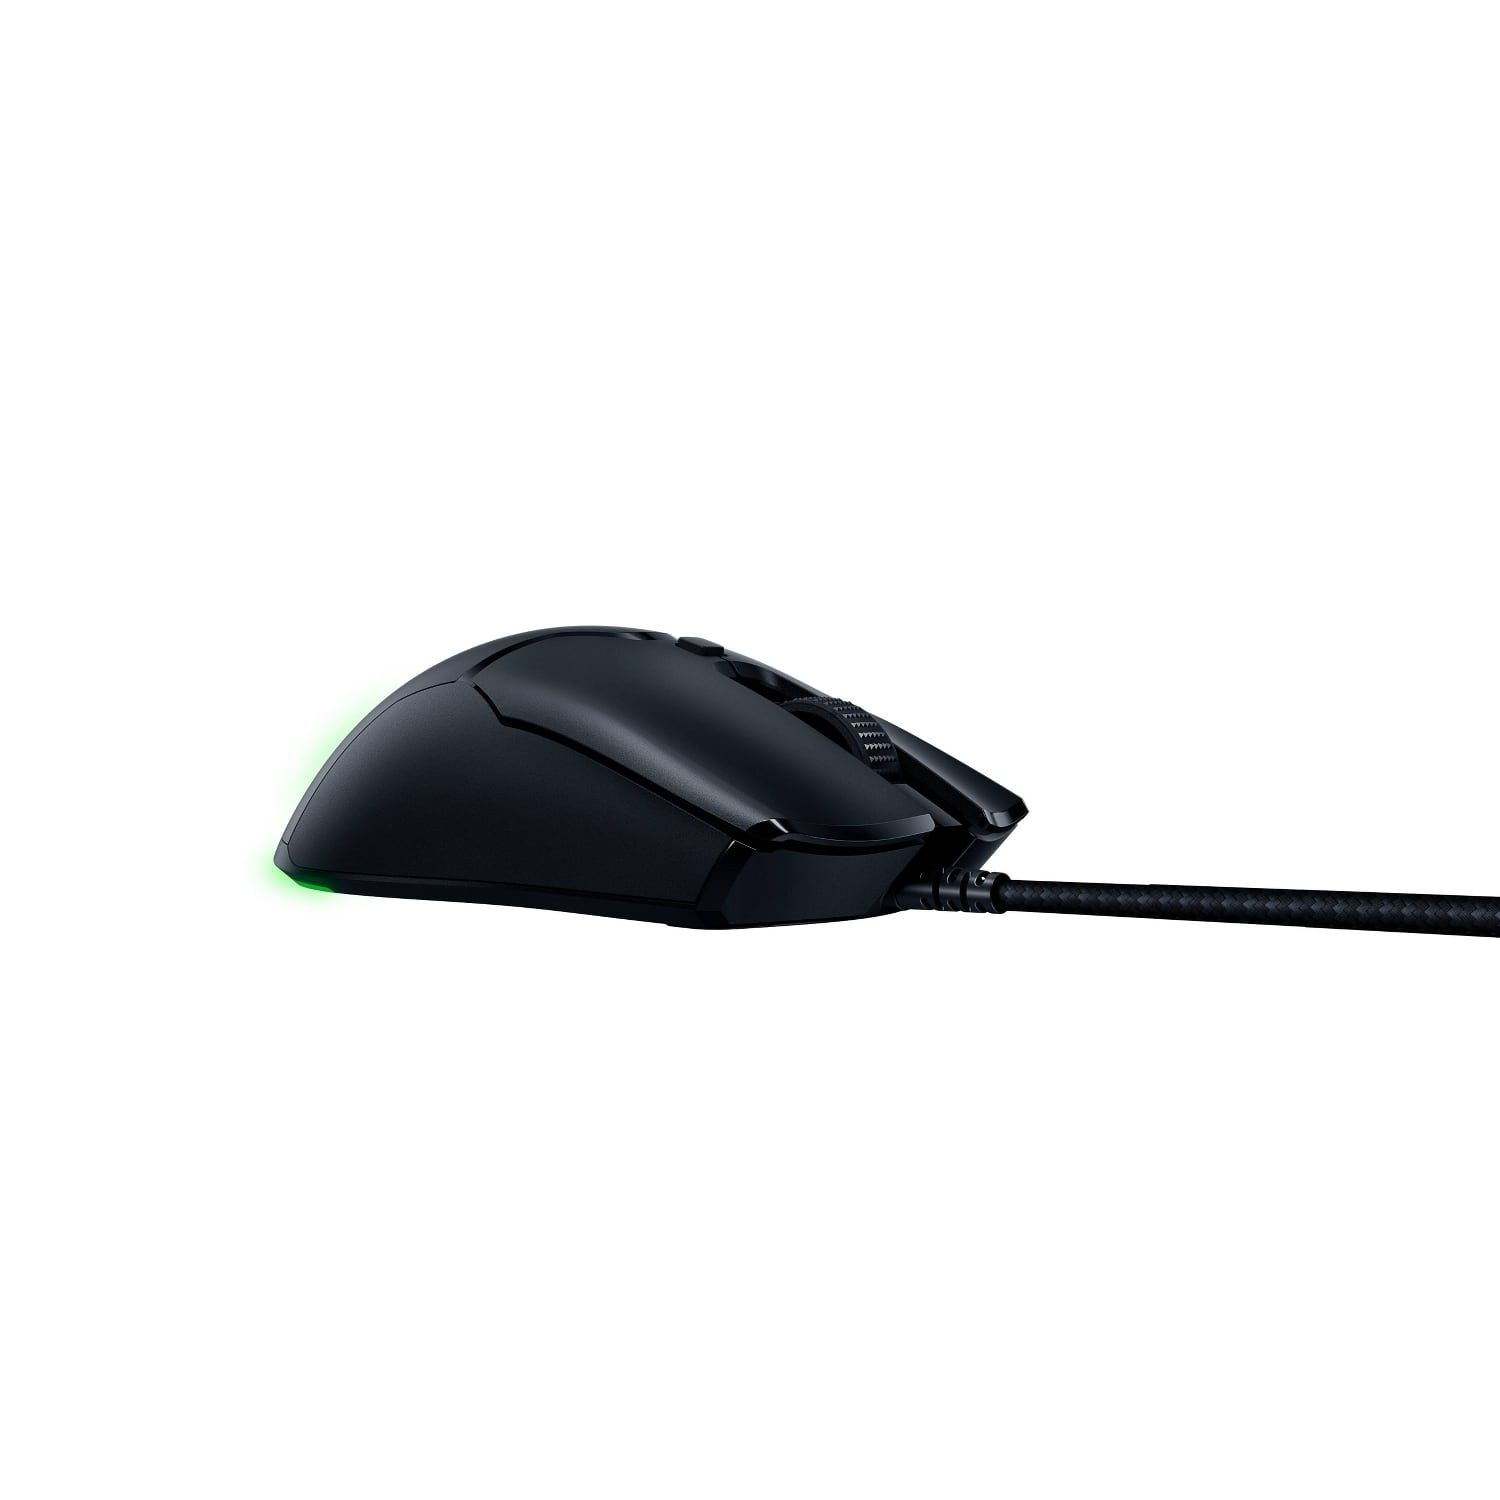 Razer Viper Mini wired gaming mouse $11.99 at Target YMMV B&M